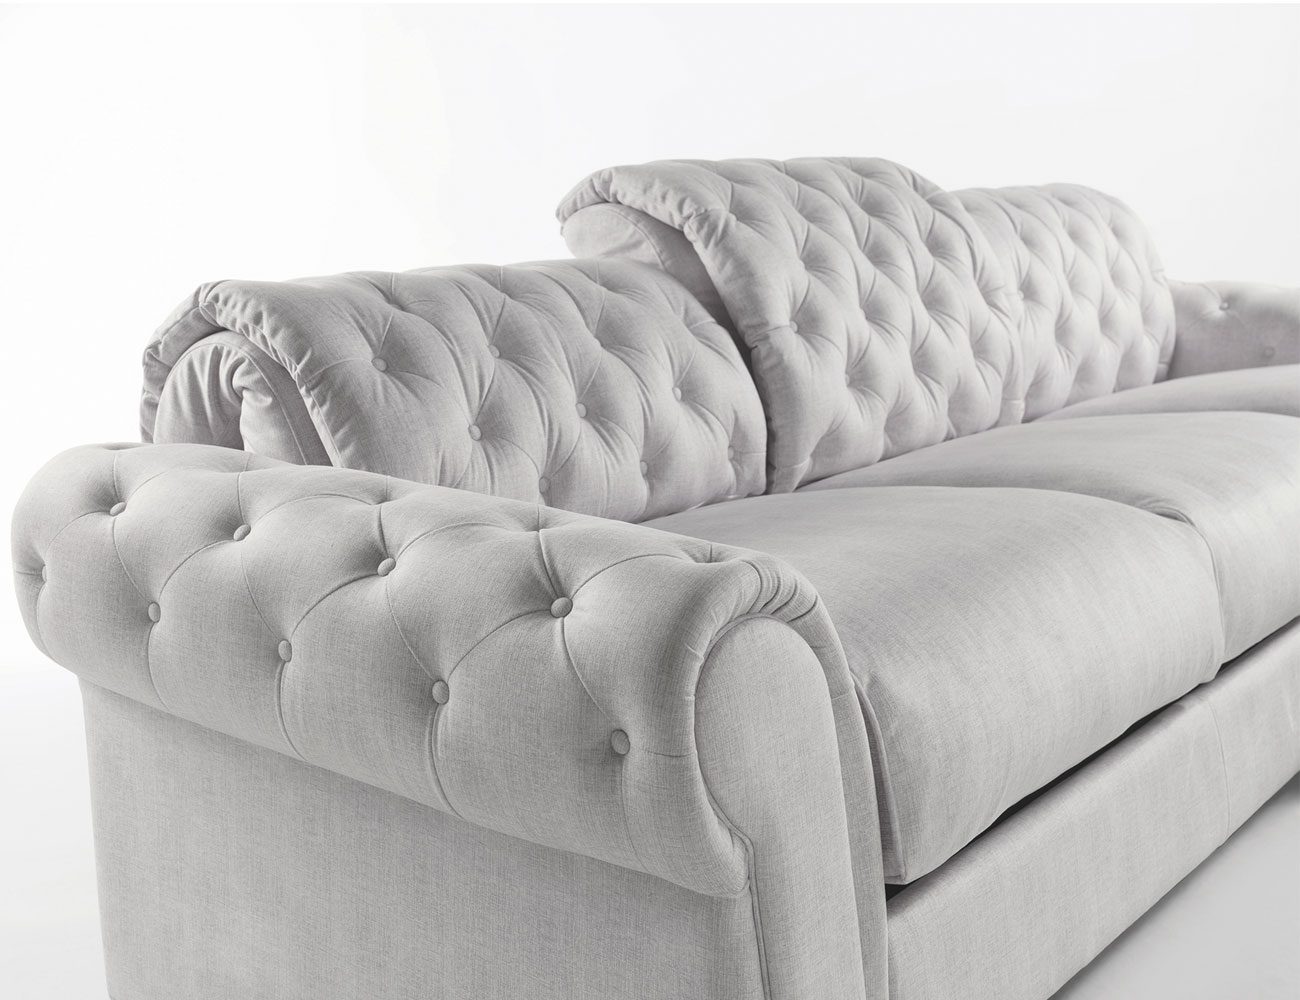 Sofa chaiselongue gran lujo decorativo capitone blanco tela 11